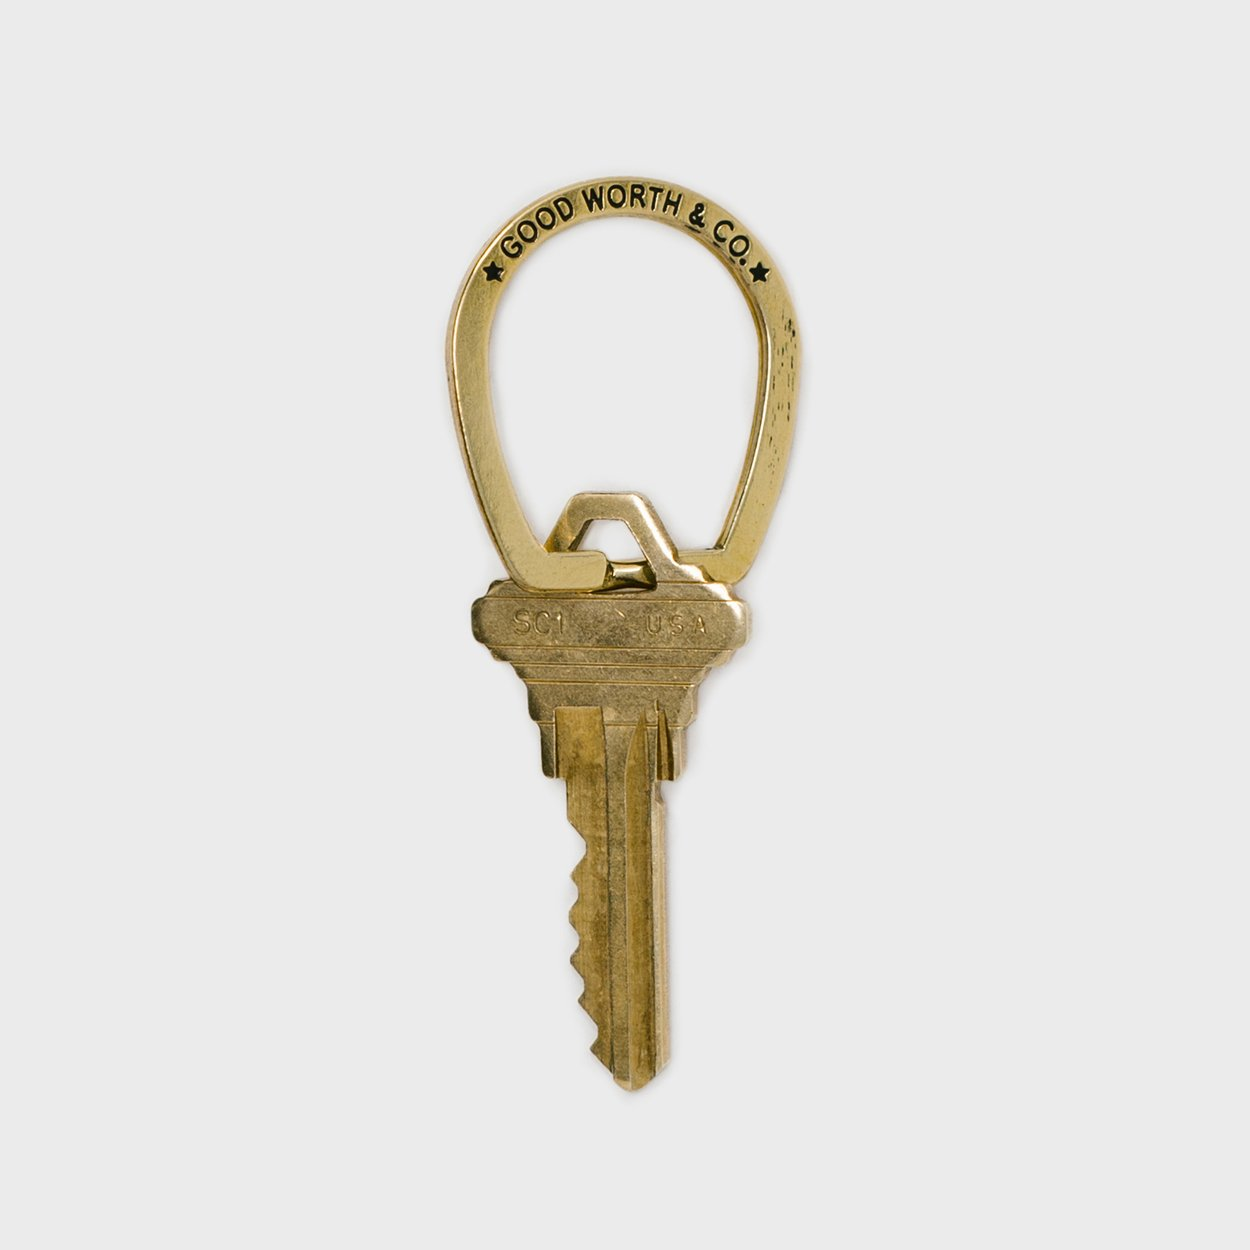 Good Luck Key Ring by Goodworth - Shop Cool Material